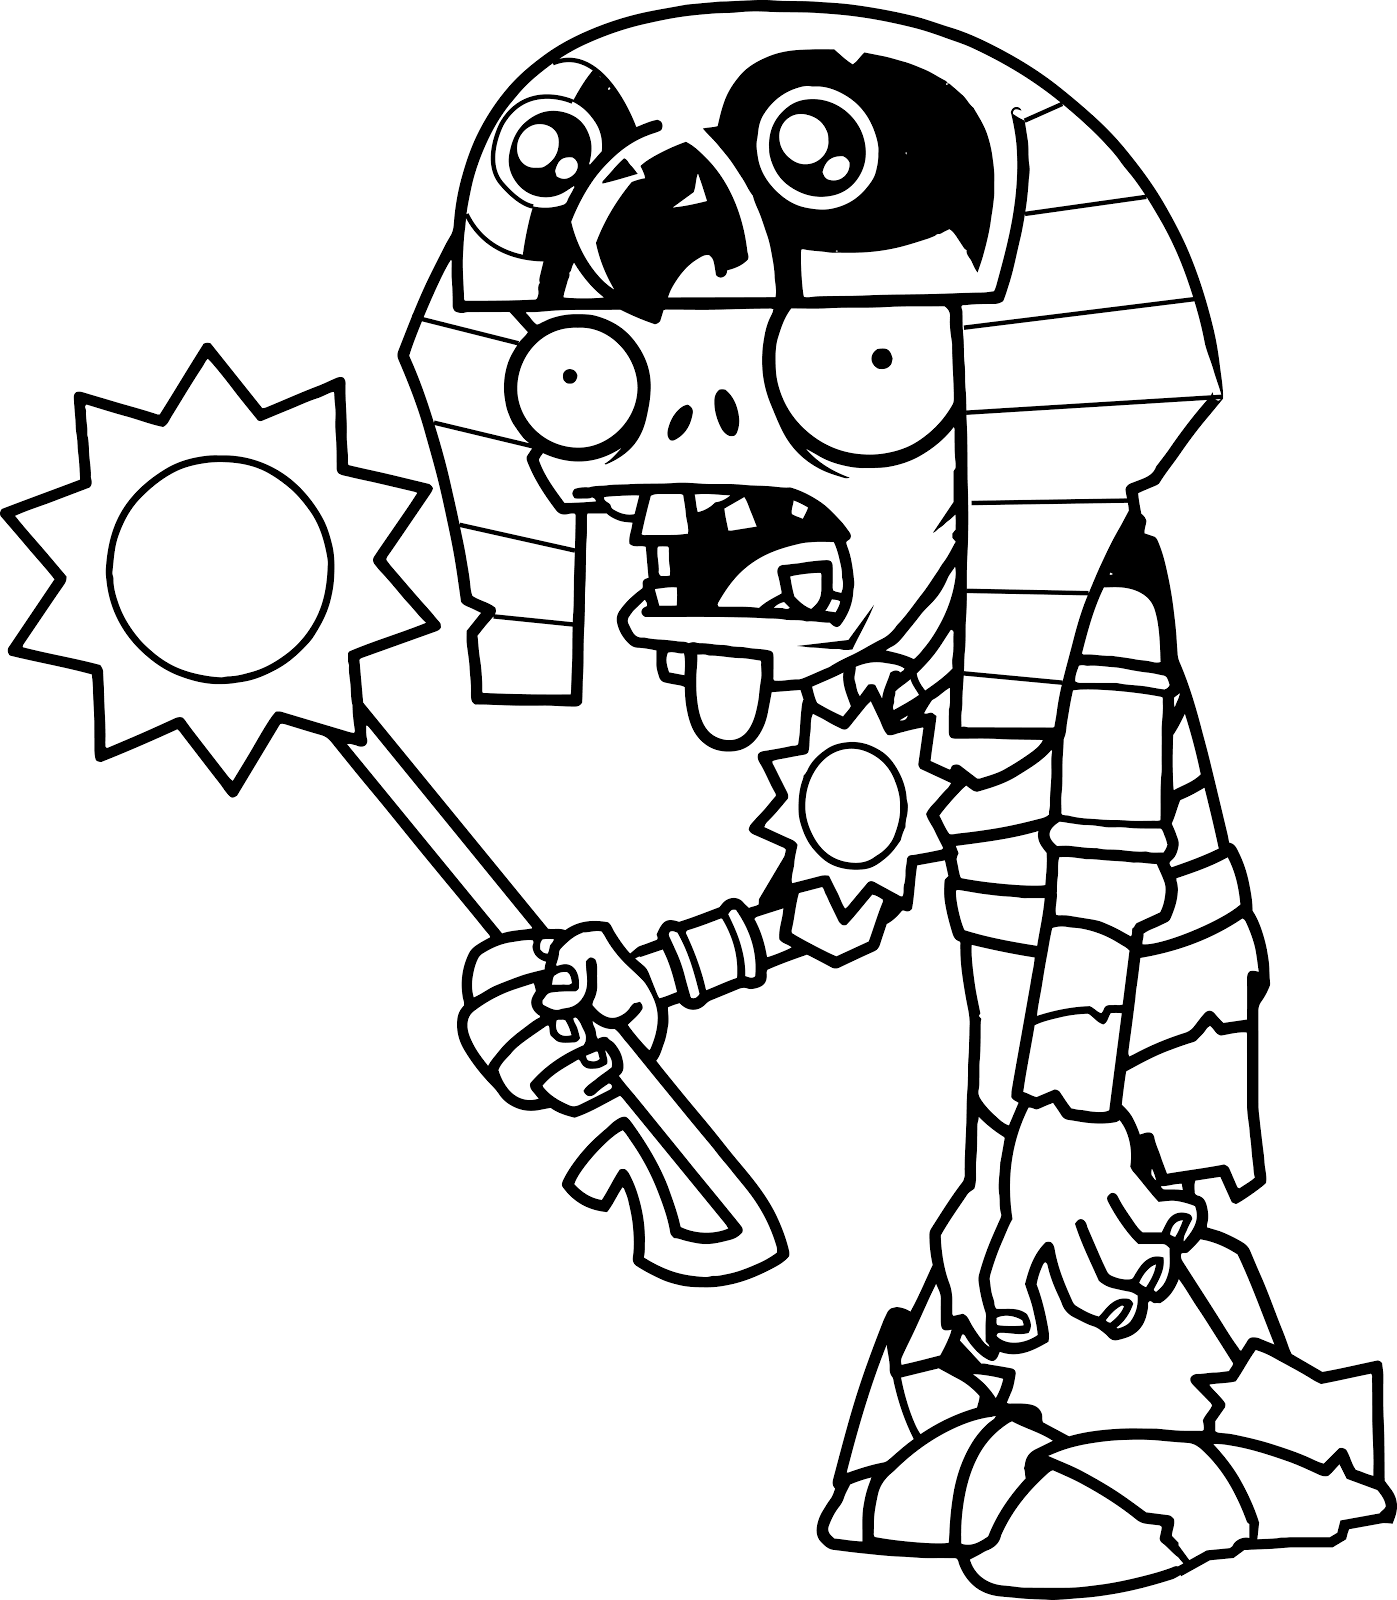 Original Coloring Pages Plants Vs Zombies 2 Egyptian Pharaoh Zombie In The Plants Category Description From Pl Free Coloring Pages Plant Zombie Coloring Pages